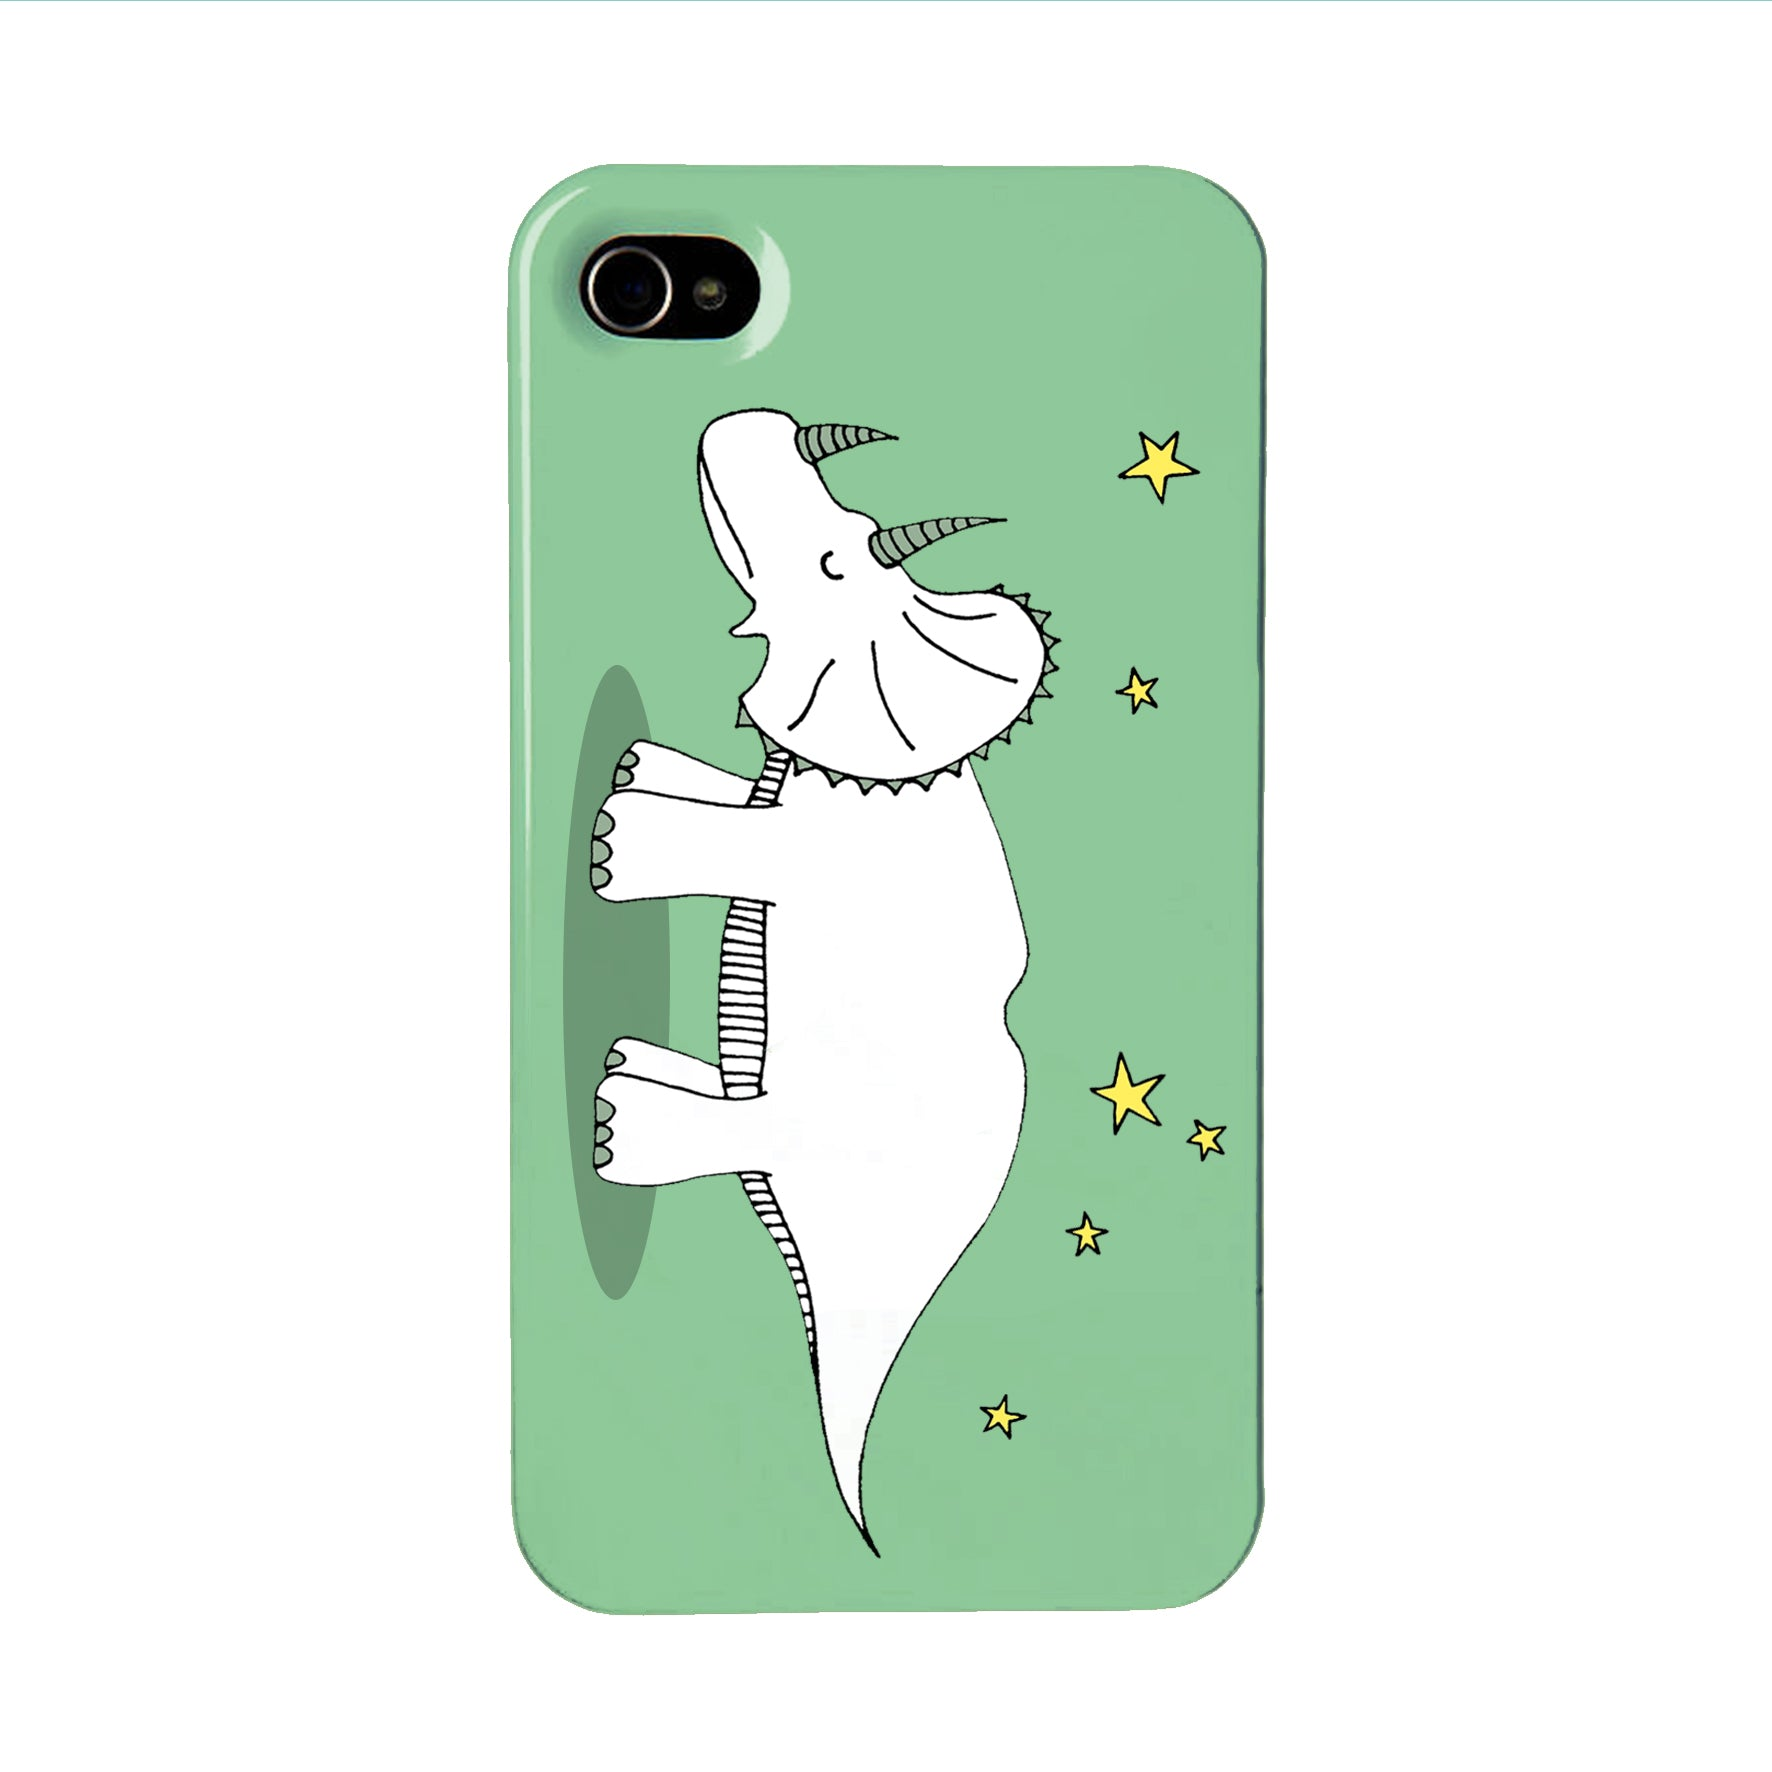 Green dinosaur phone case with an illustration of a triceratops